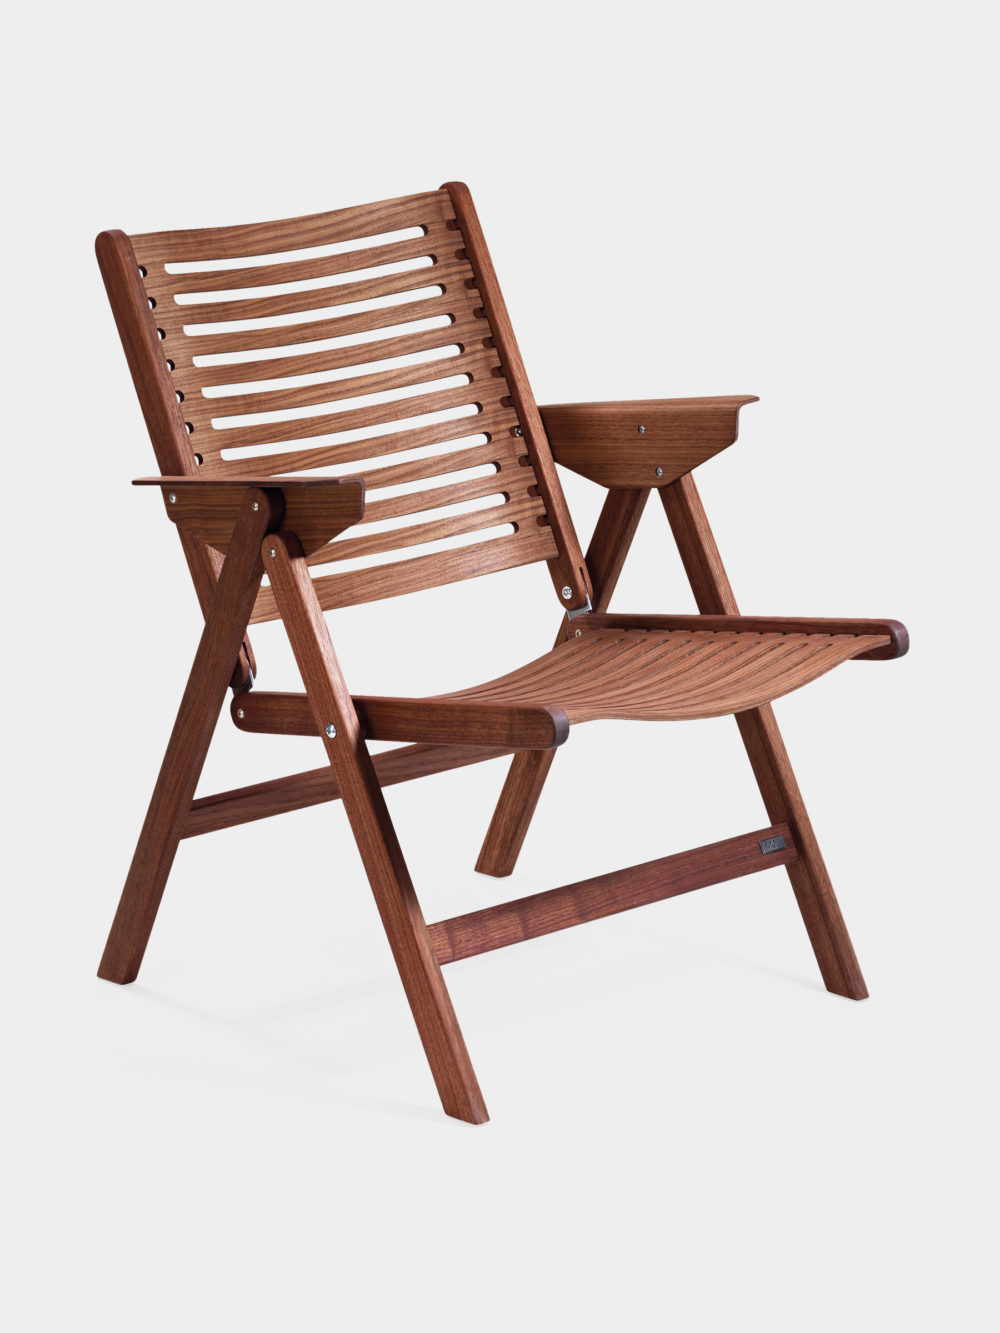 Rex_Kralj_Lounge_Chair walnut